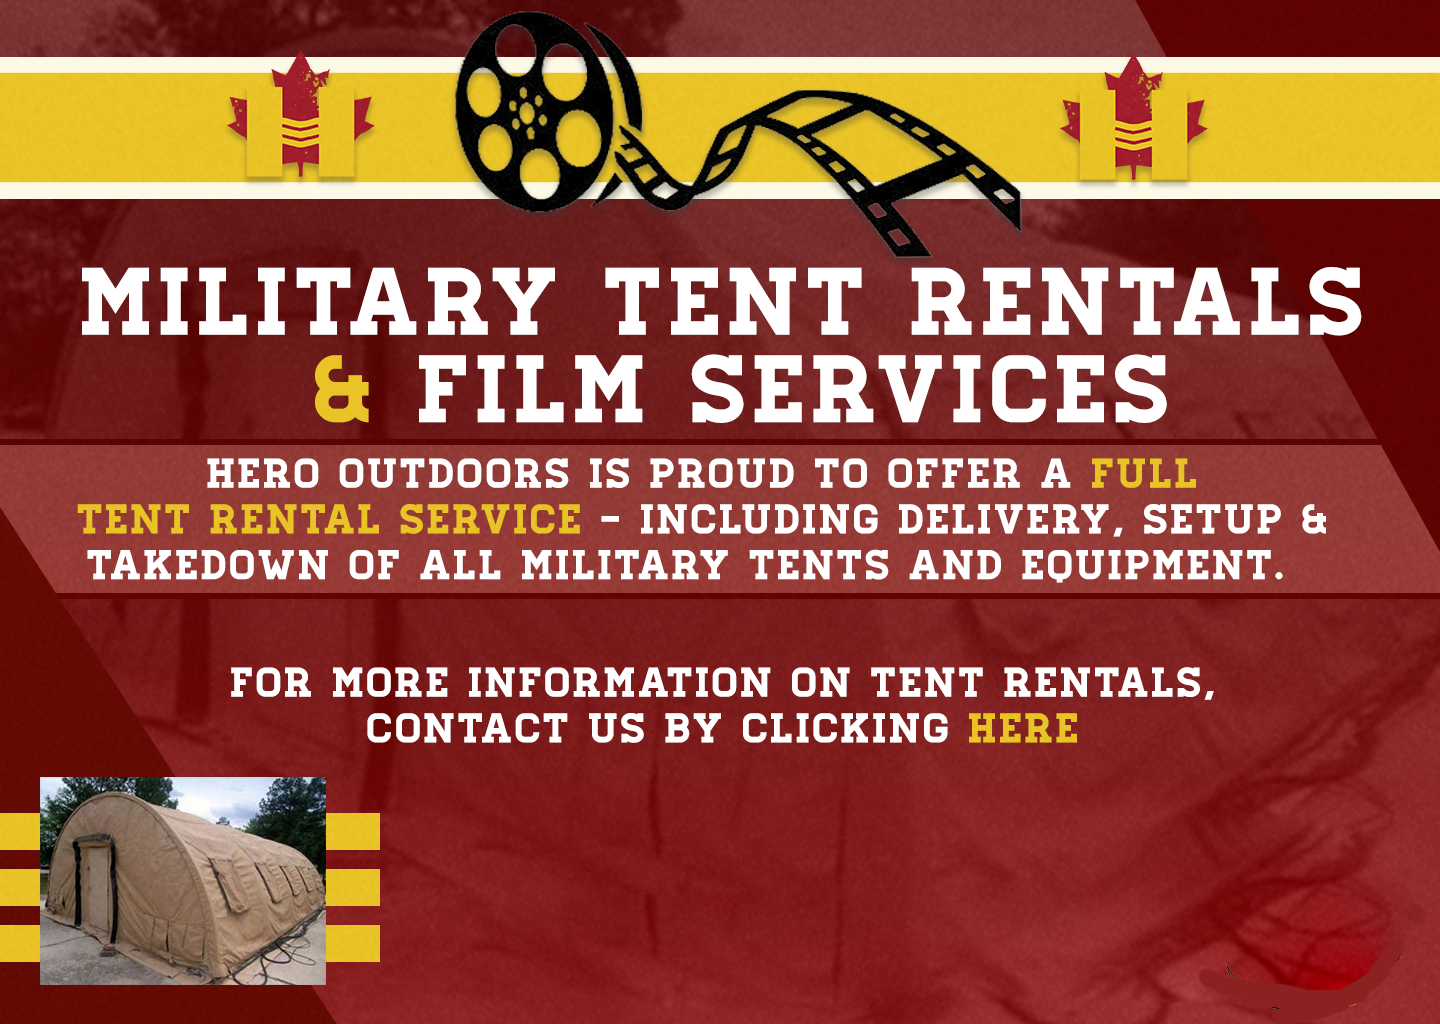 Military Tent Rentals and Film Services